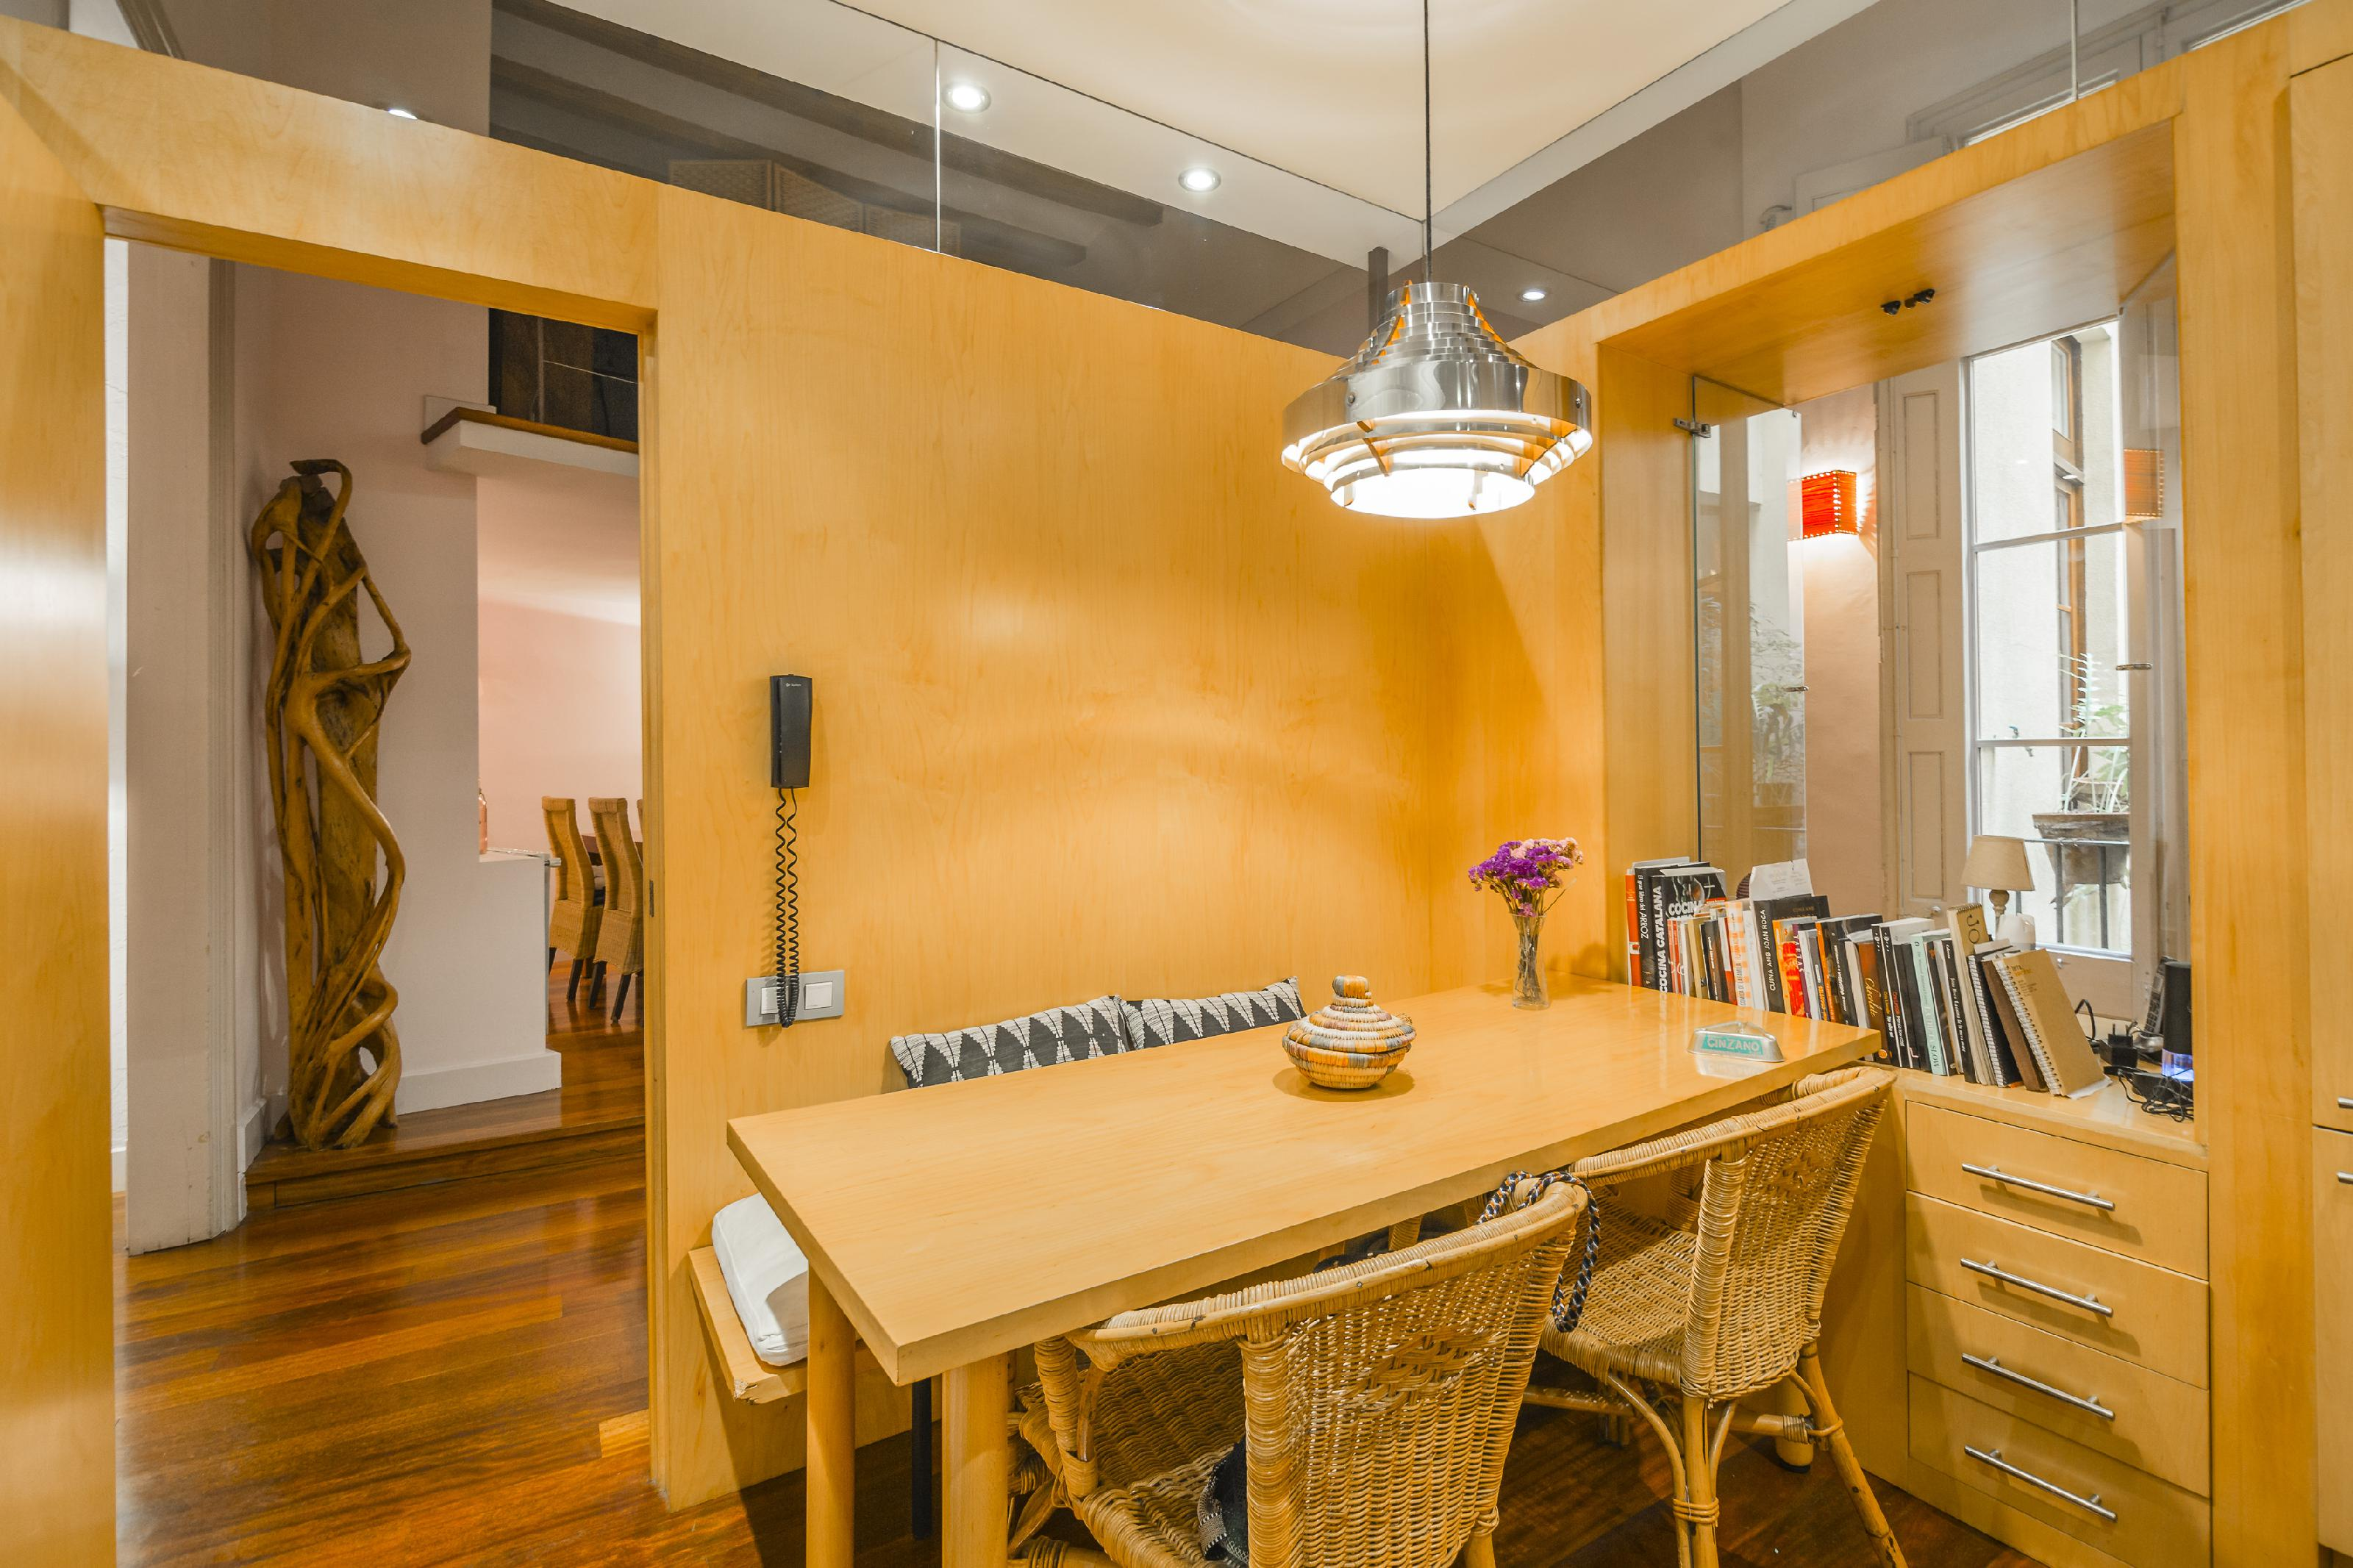 241111 Flat for sale in Ciutat Vella, Barri Gótic 18